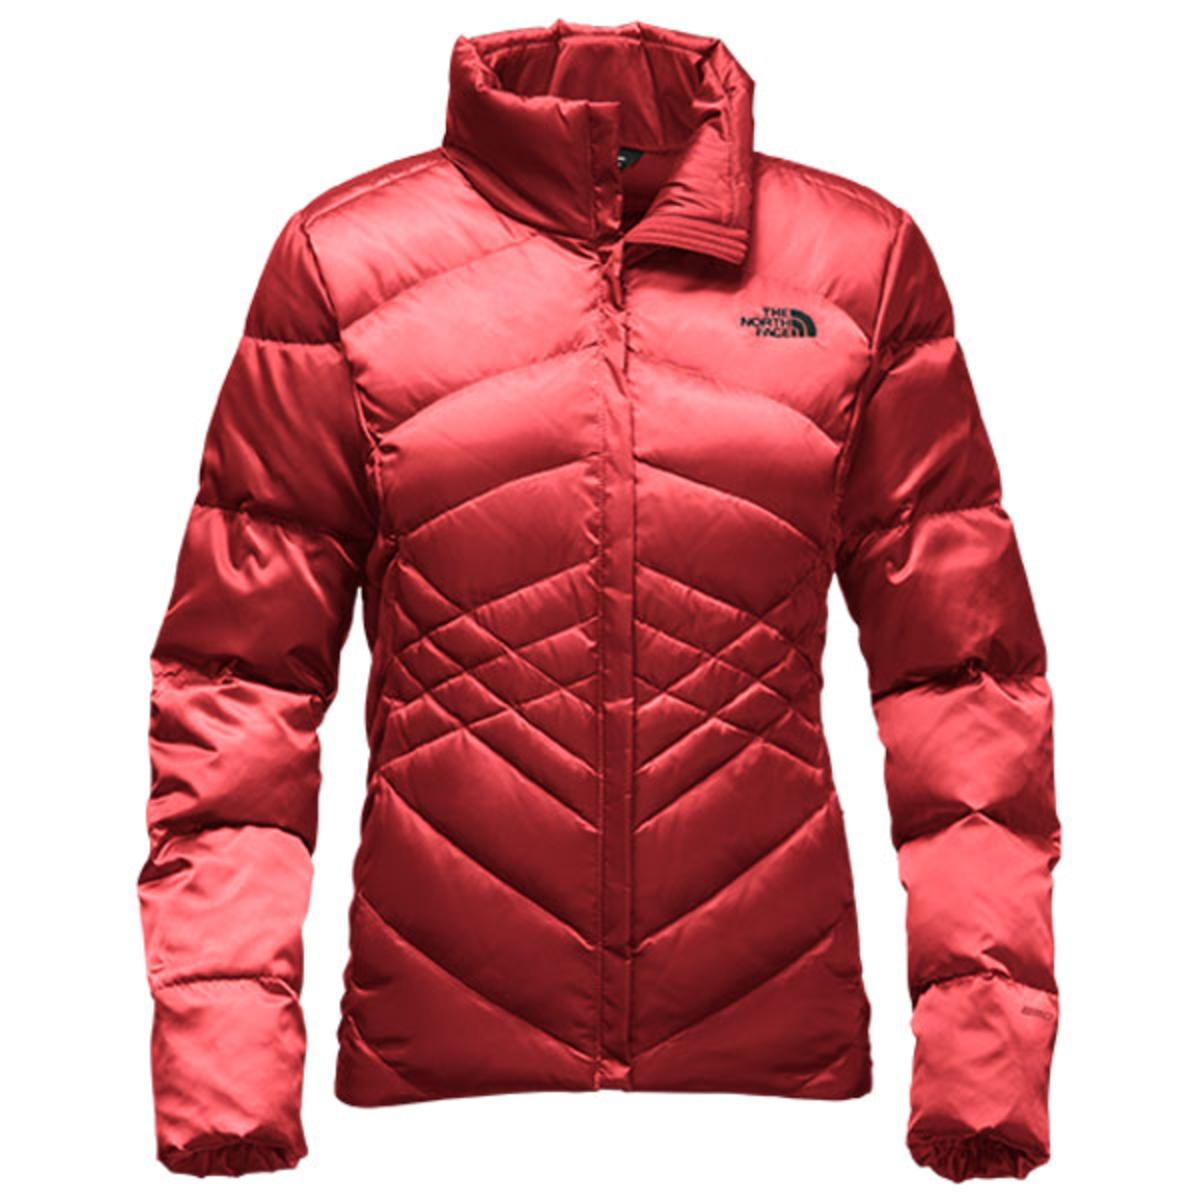 4476110b7 The North Face Women's Aconcagua Jacket - Red - The Warming Store